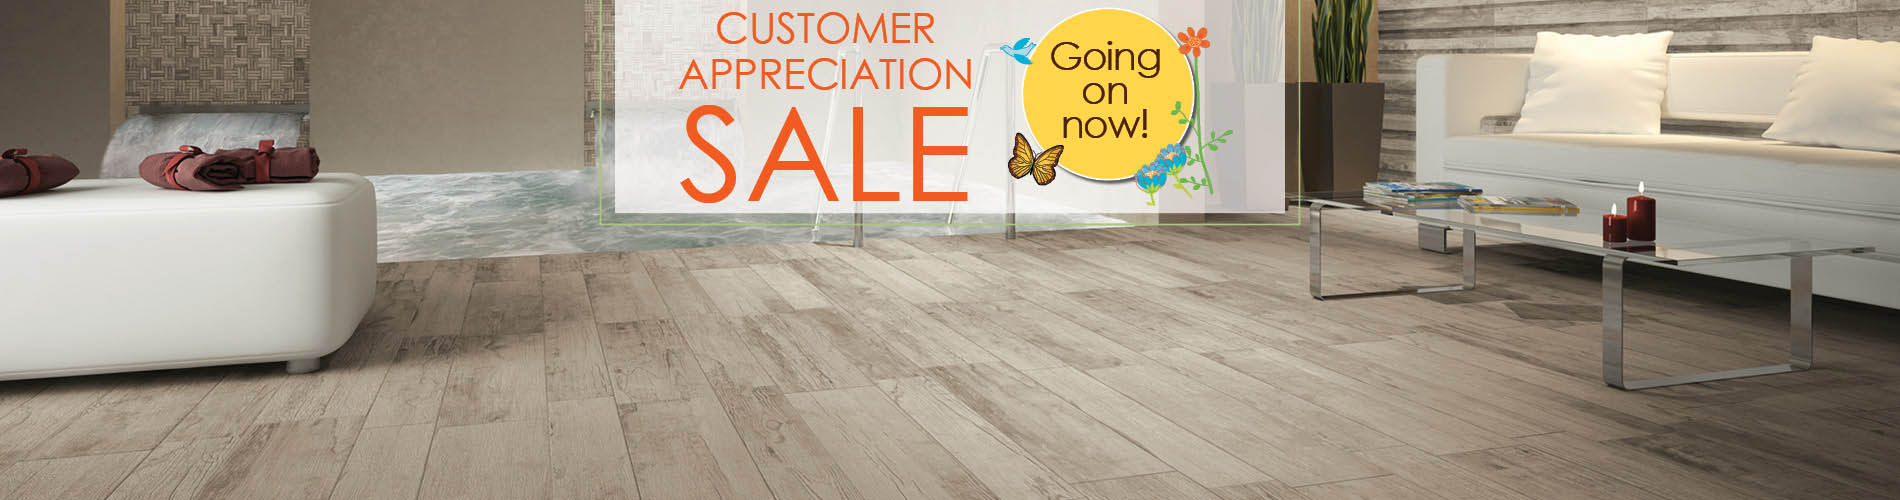 Save big on flooring this month during the Spectacular Home Flooring Sale at Abbey Carpet & Floor!